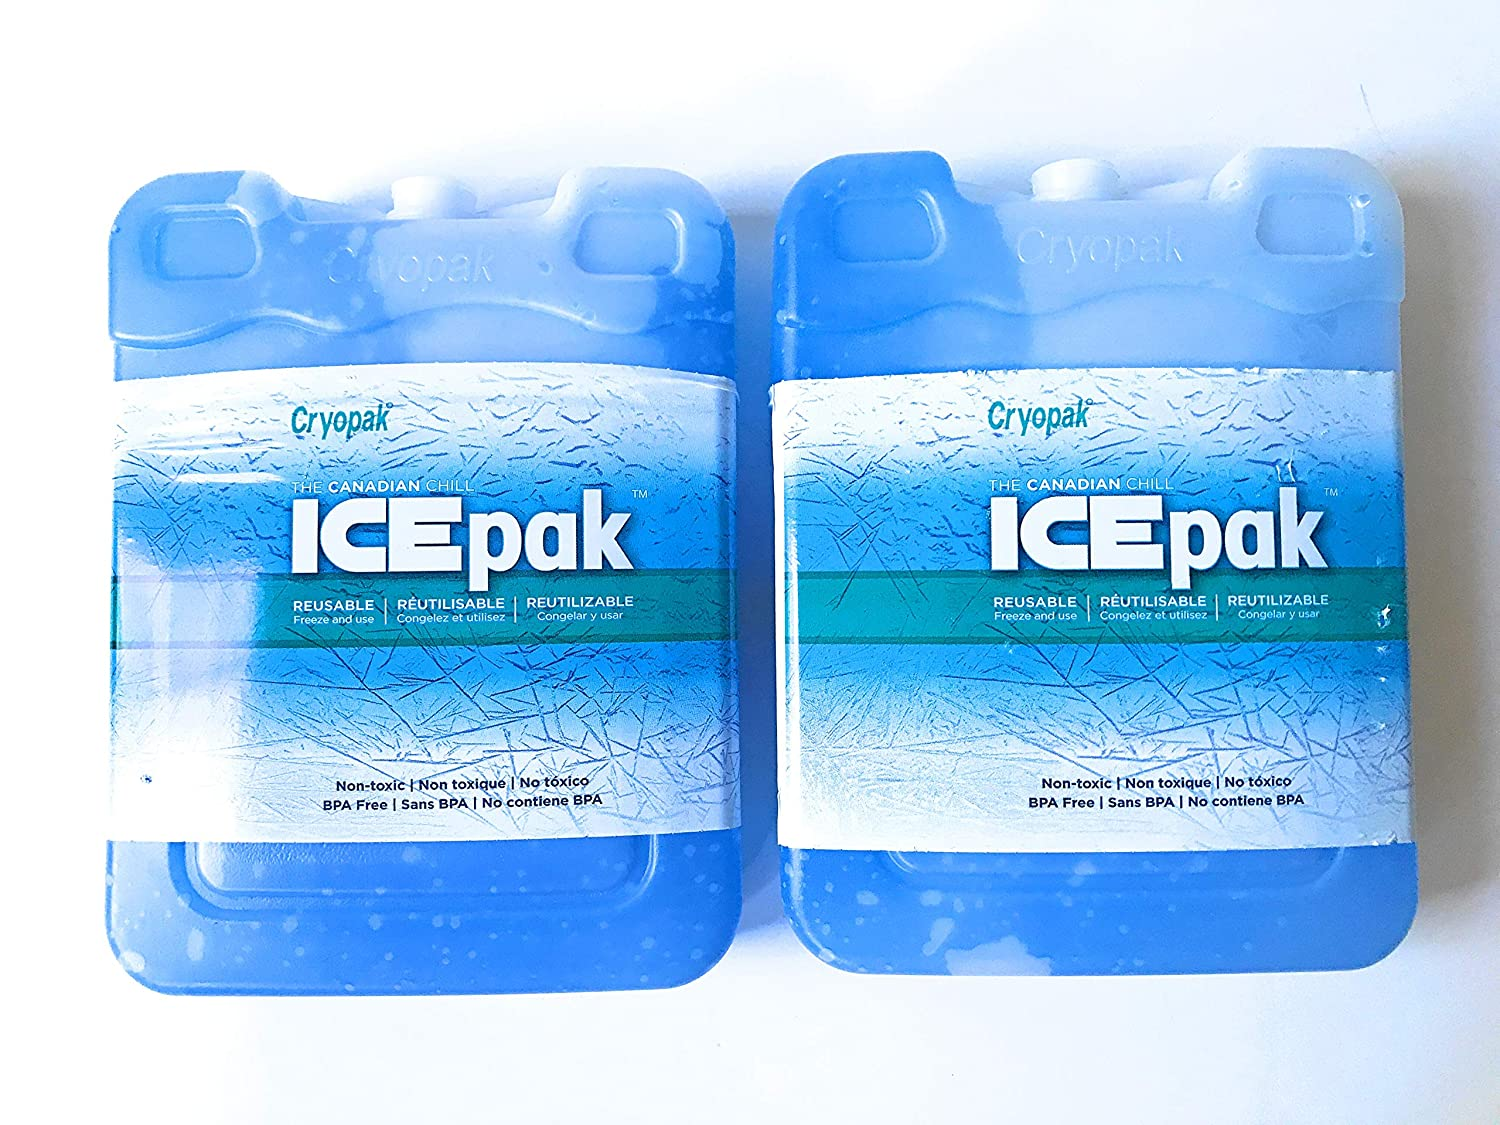 Cryopak Large Hard Shell Ice Packs - Set of 2-8 Inches Tall X 6 Inches Wide X 1.5 Inches Deep - Perfect Ice Packs for Coolers - Great Value!